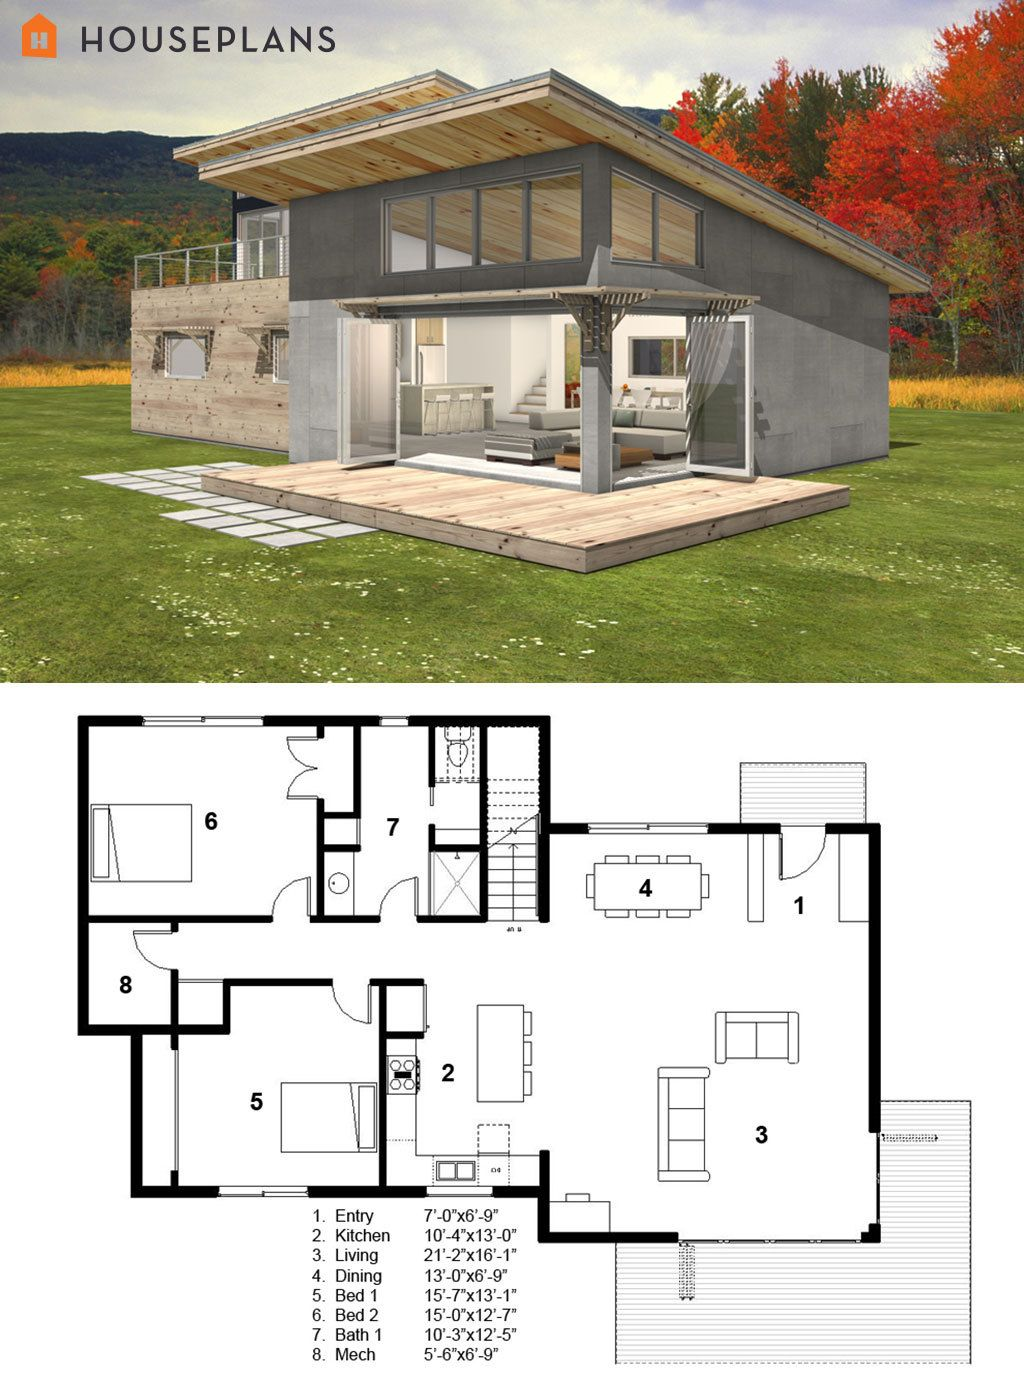 Modern style house plan 3 beds baths 2115 sq ft for Modern house design concepts